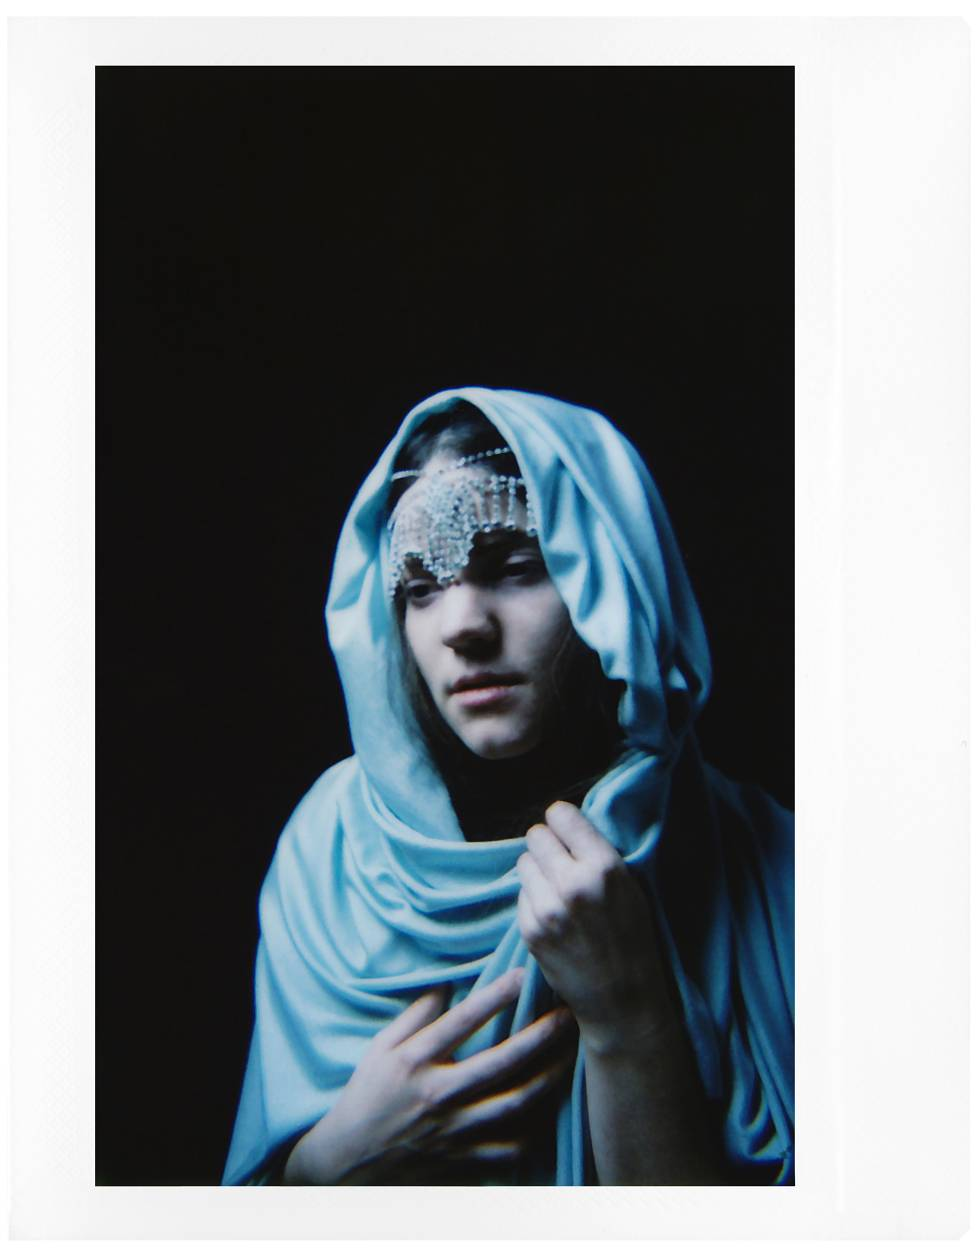 Klara Johanna Michel's Ethereal Visions as Captured by the Lomo'Instant Wide